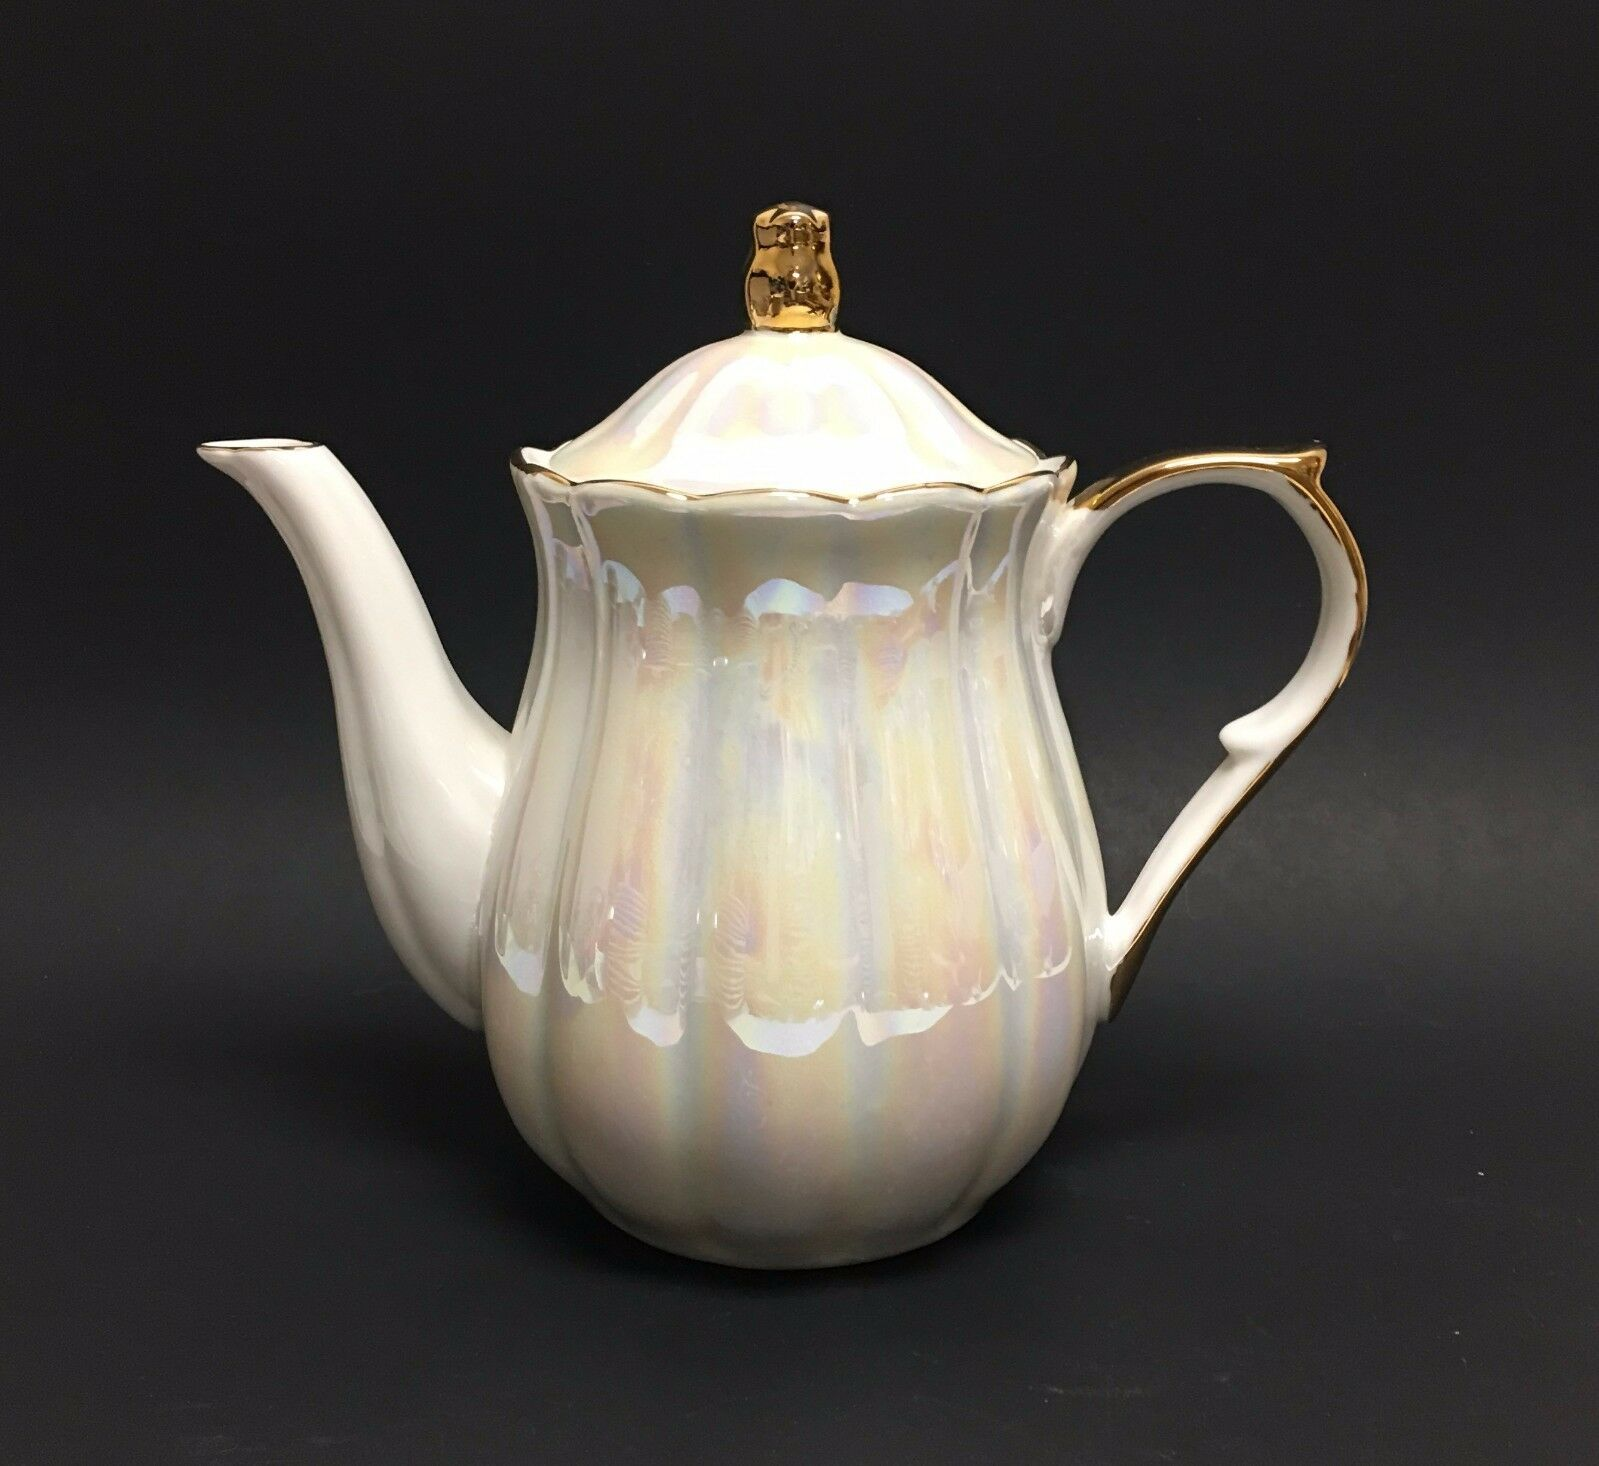 GRACE'S TEAWARE PEARL WHITE+IRIDESCENT PORCELAIN+gold TRIM TEA+COFFEE POT,TEAPOT